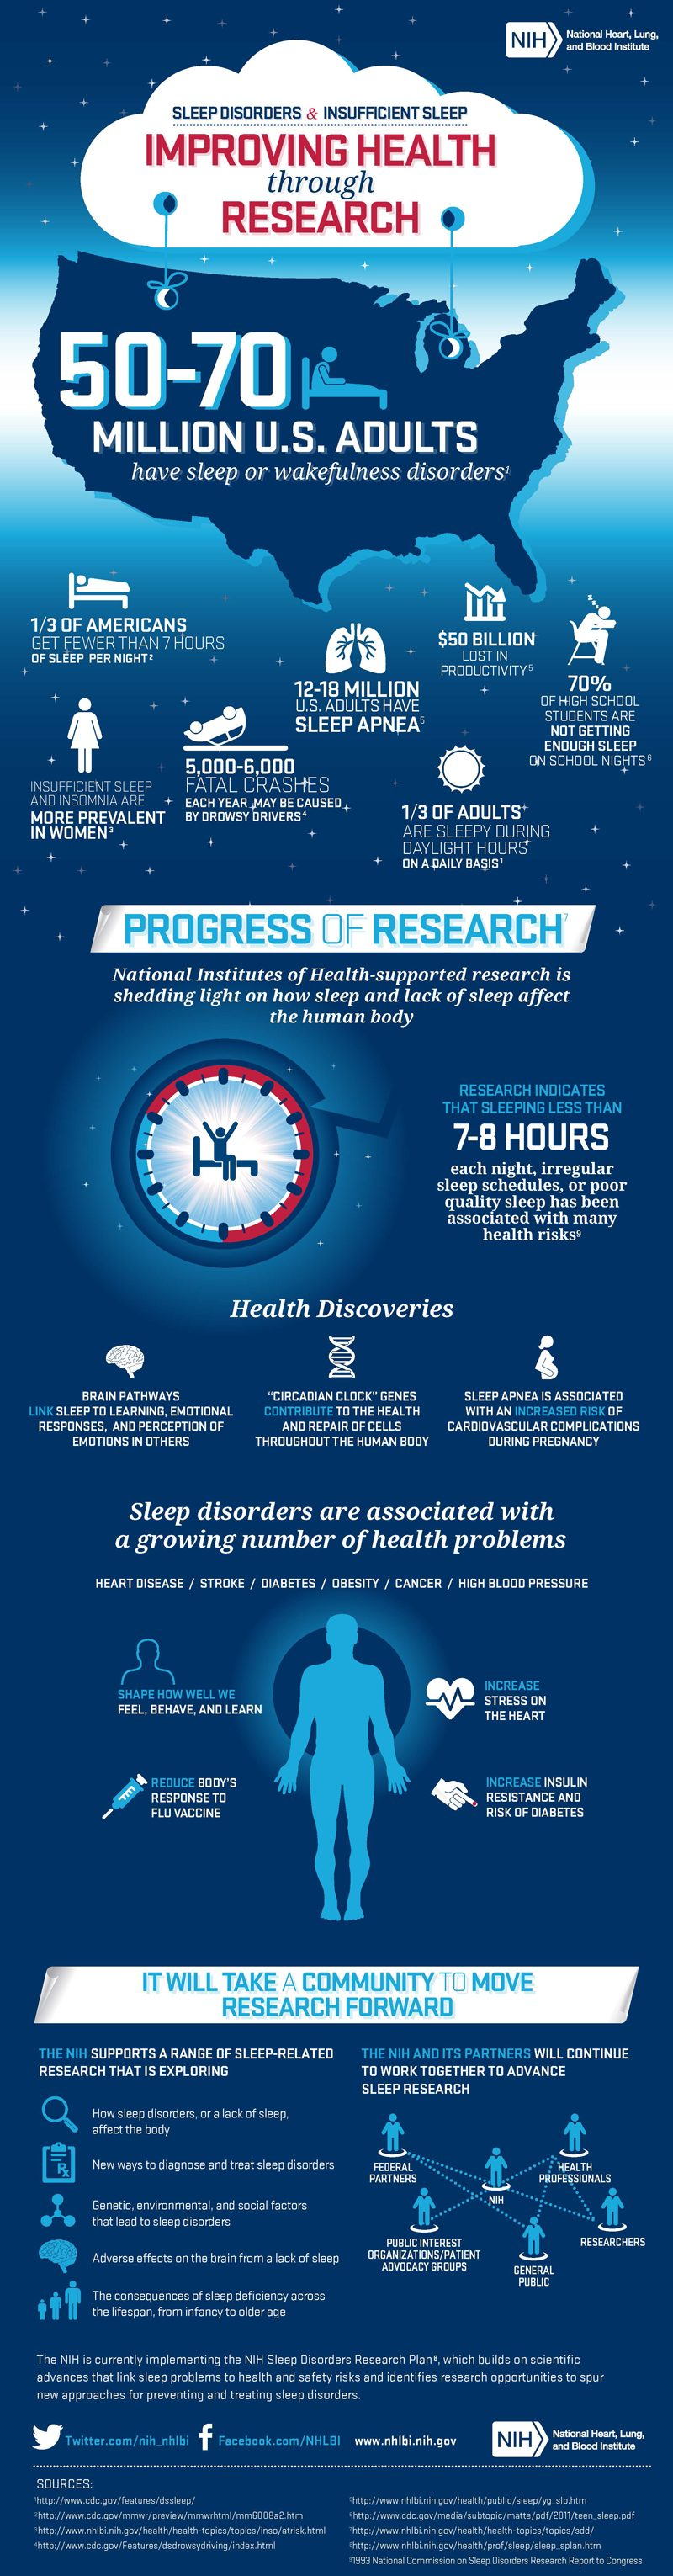 SLEEP DISORDERS & INSUFFICIENT SLEEP